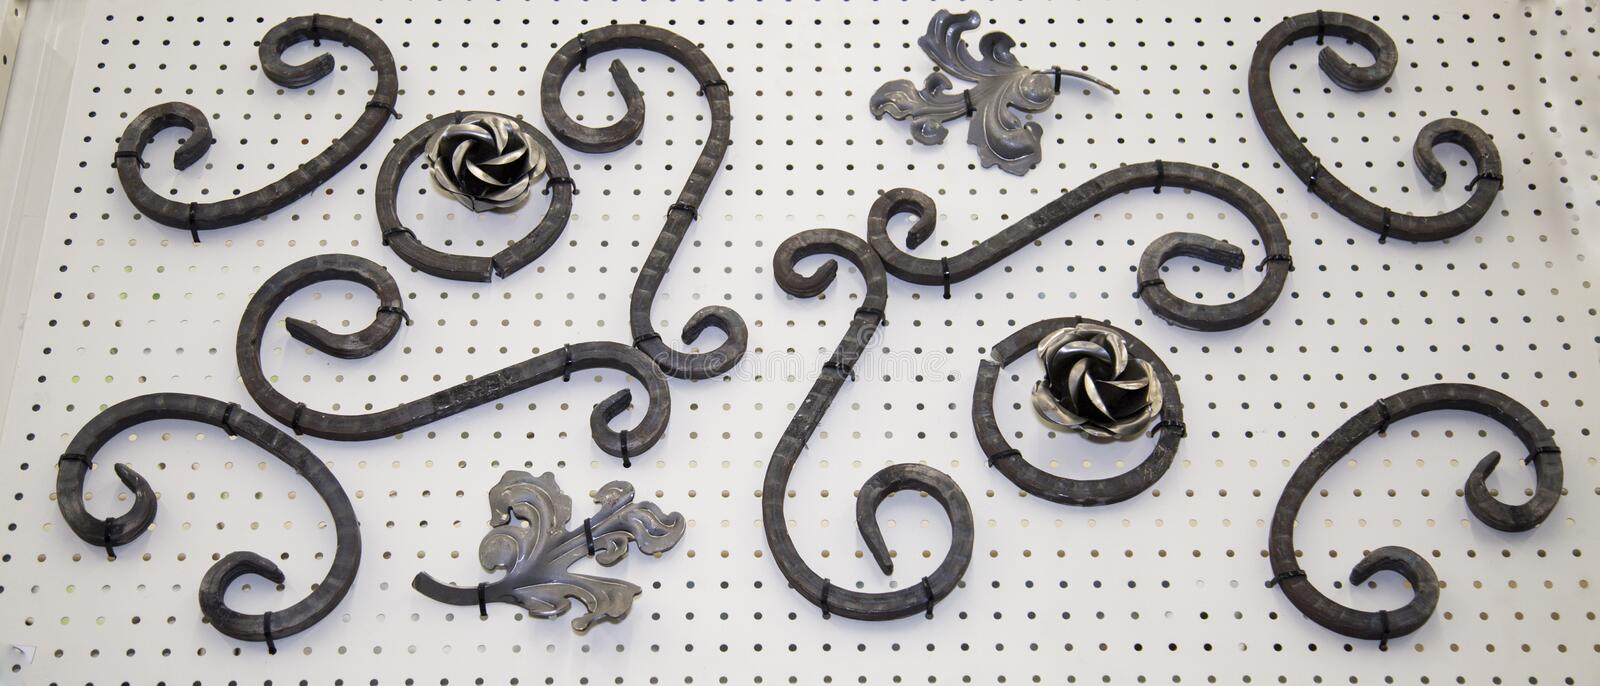 Forged metal products in the form of curls, circles, flowers, leaves fixed on a white stand. Construction, repair, art. Design stock photography